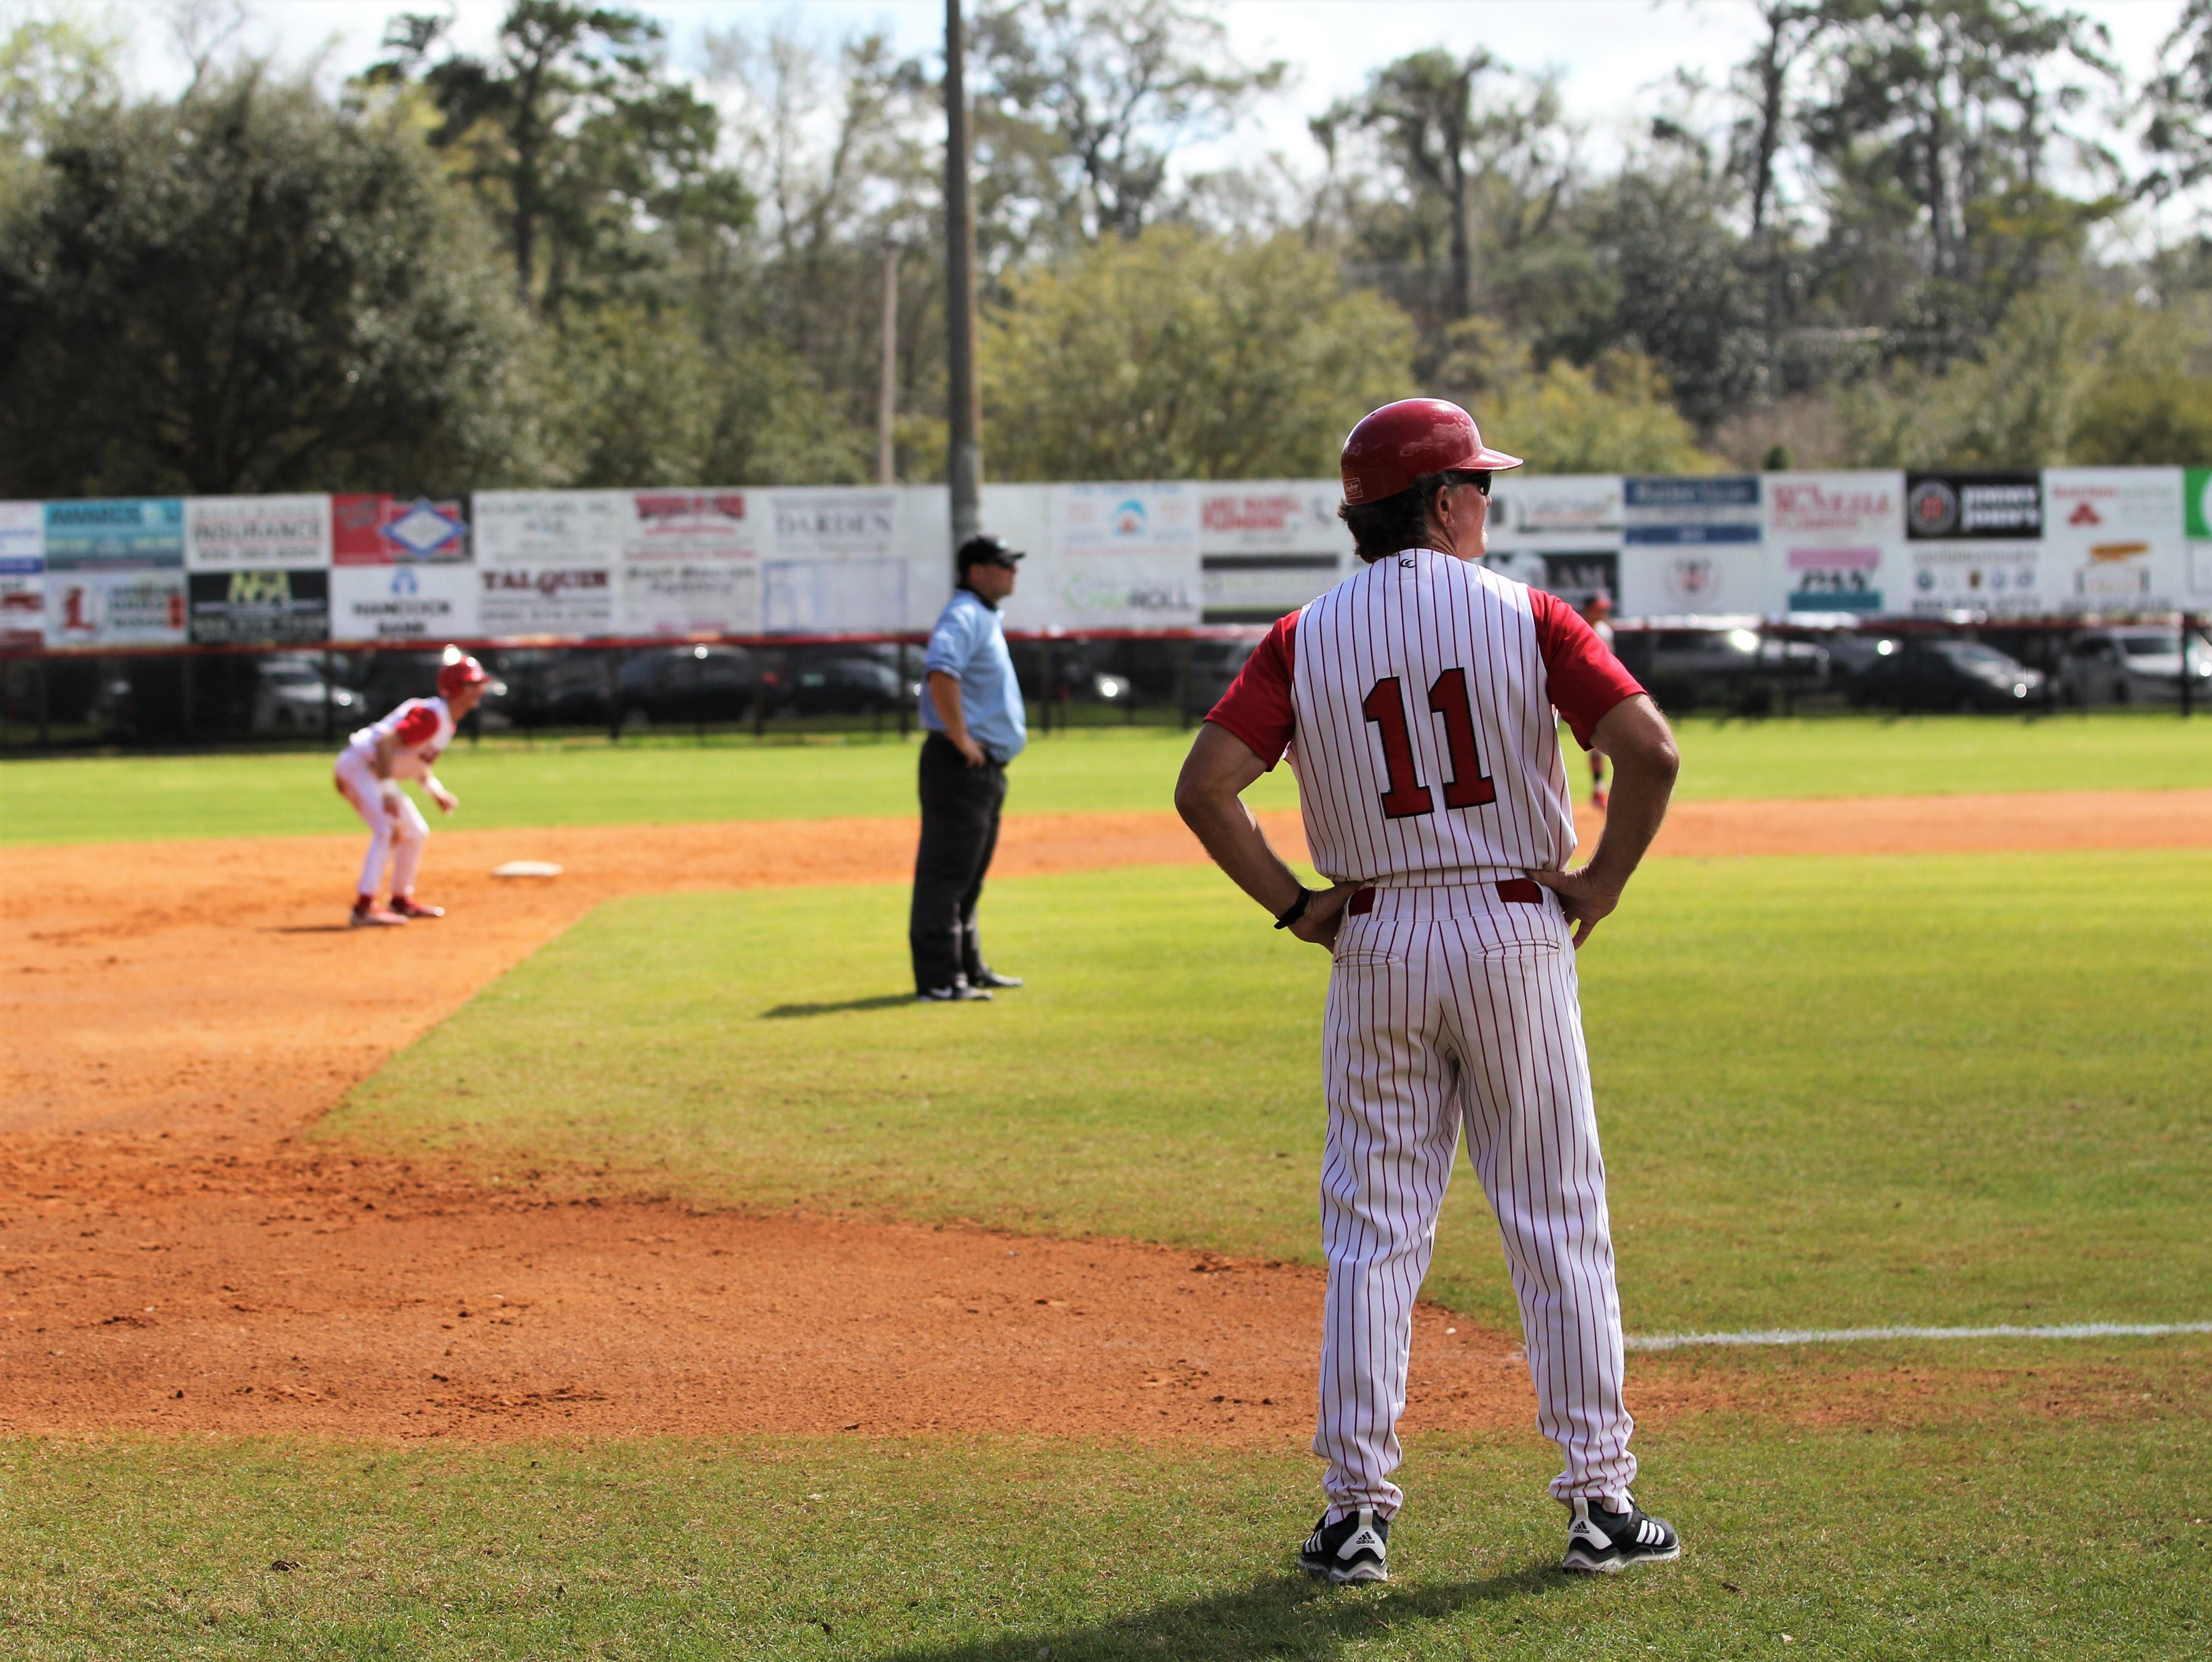 Leon baseball coach Robbie Zimmerman readies for a pitch as NFC plays at Leon during a preseason game in February.